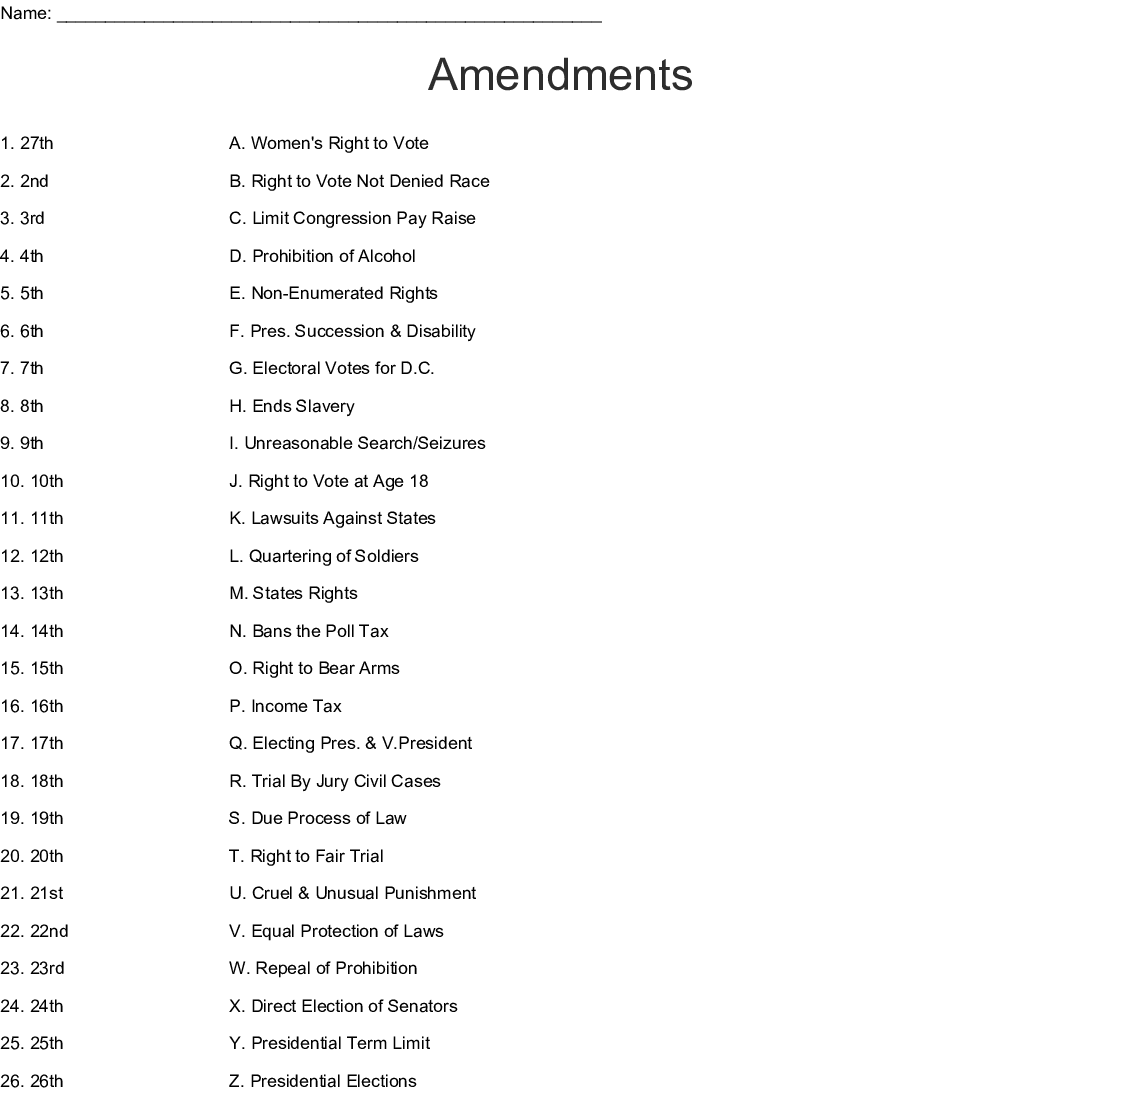 hight resolution of 8th Amendment Worksheet   Printable Worksheets and Activities for Teachers